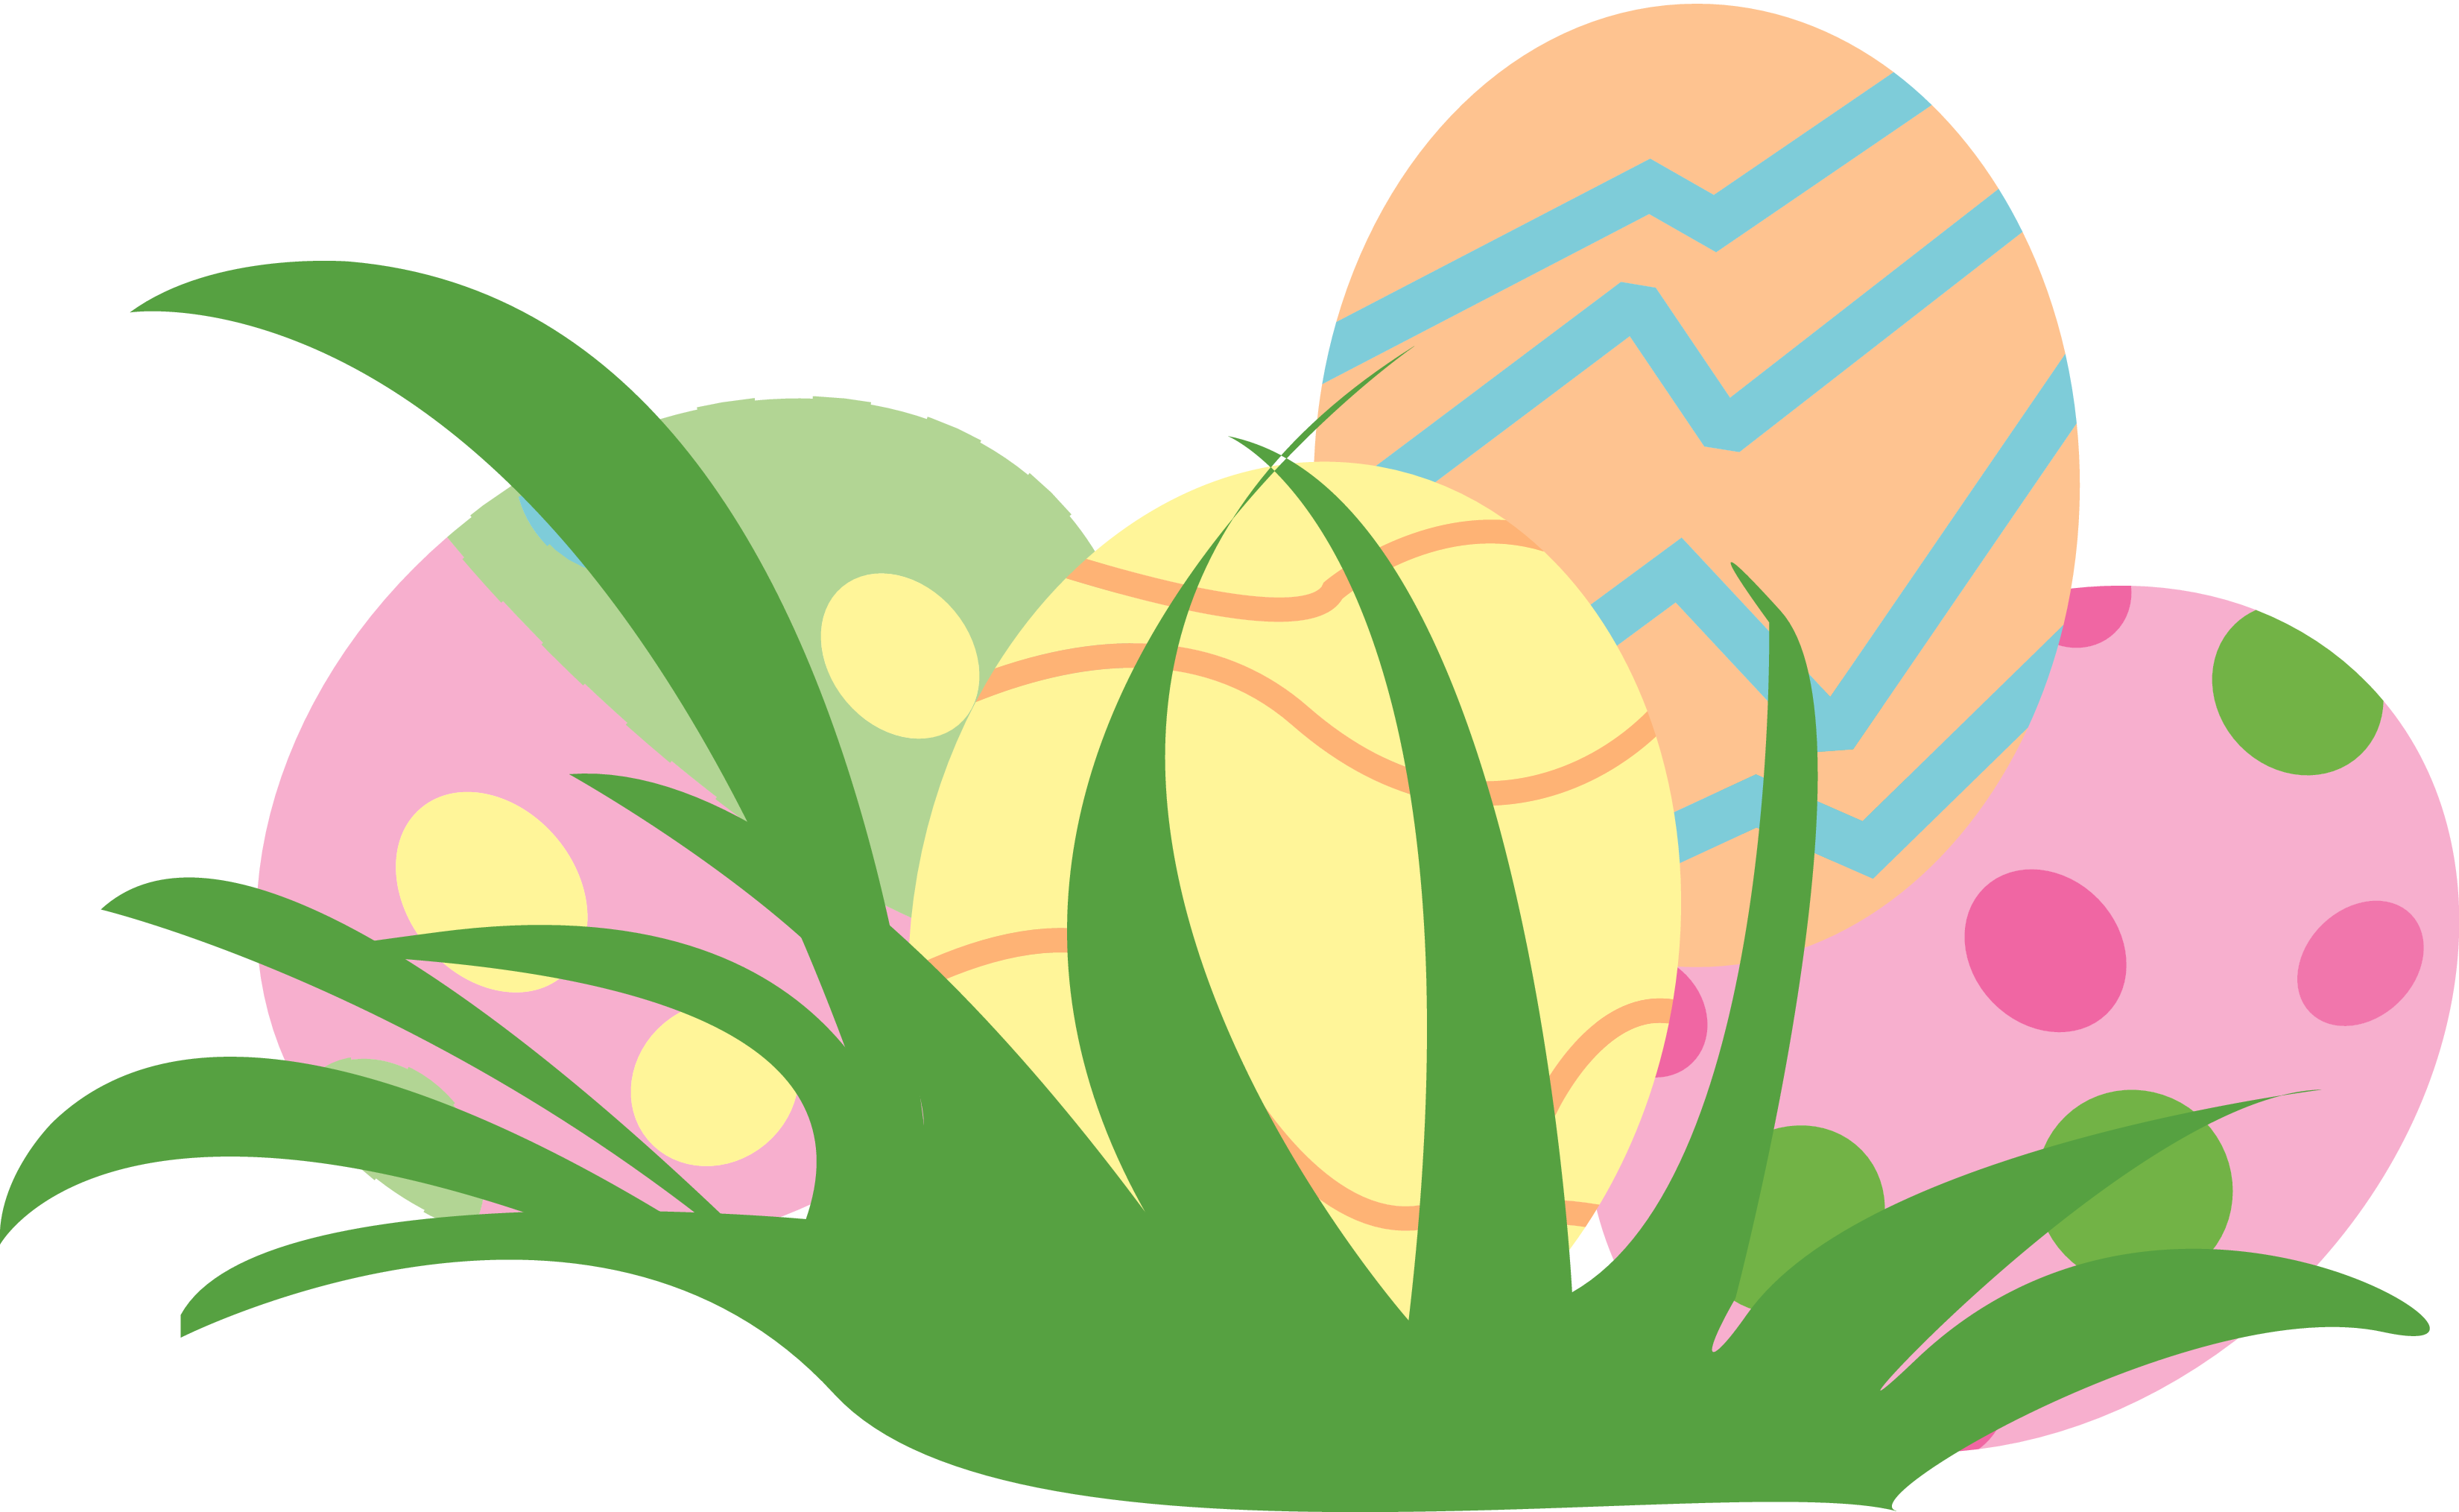 Bunny egg clipart jpg freeuse library Free Easter Egg Clipart, Download Free Clip Art, Free Clip Art on ... jpg freeuse library